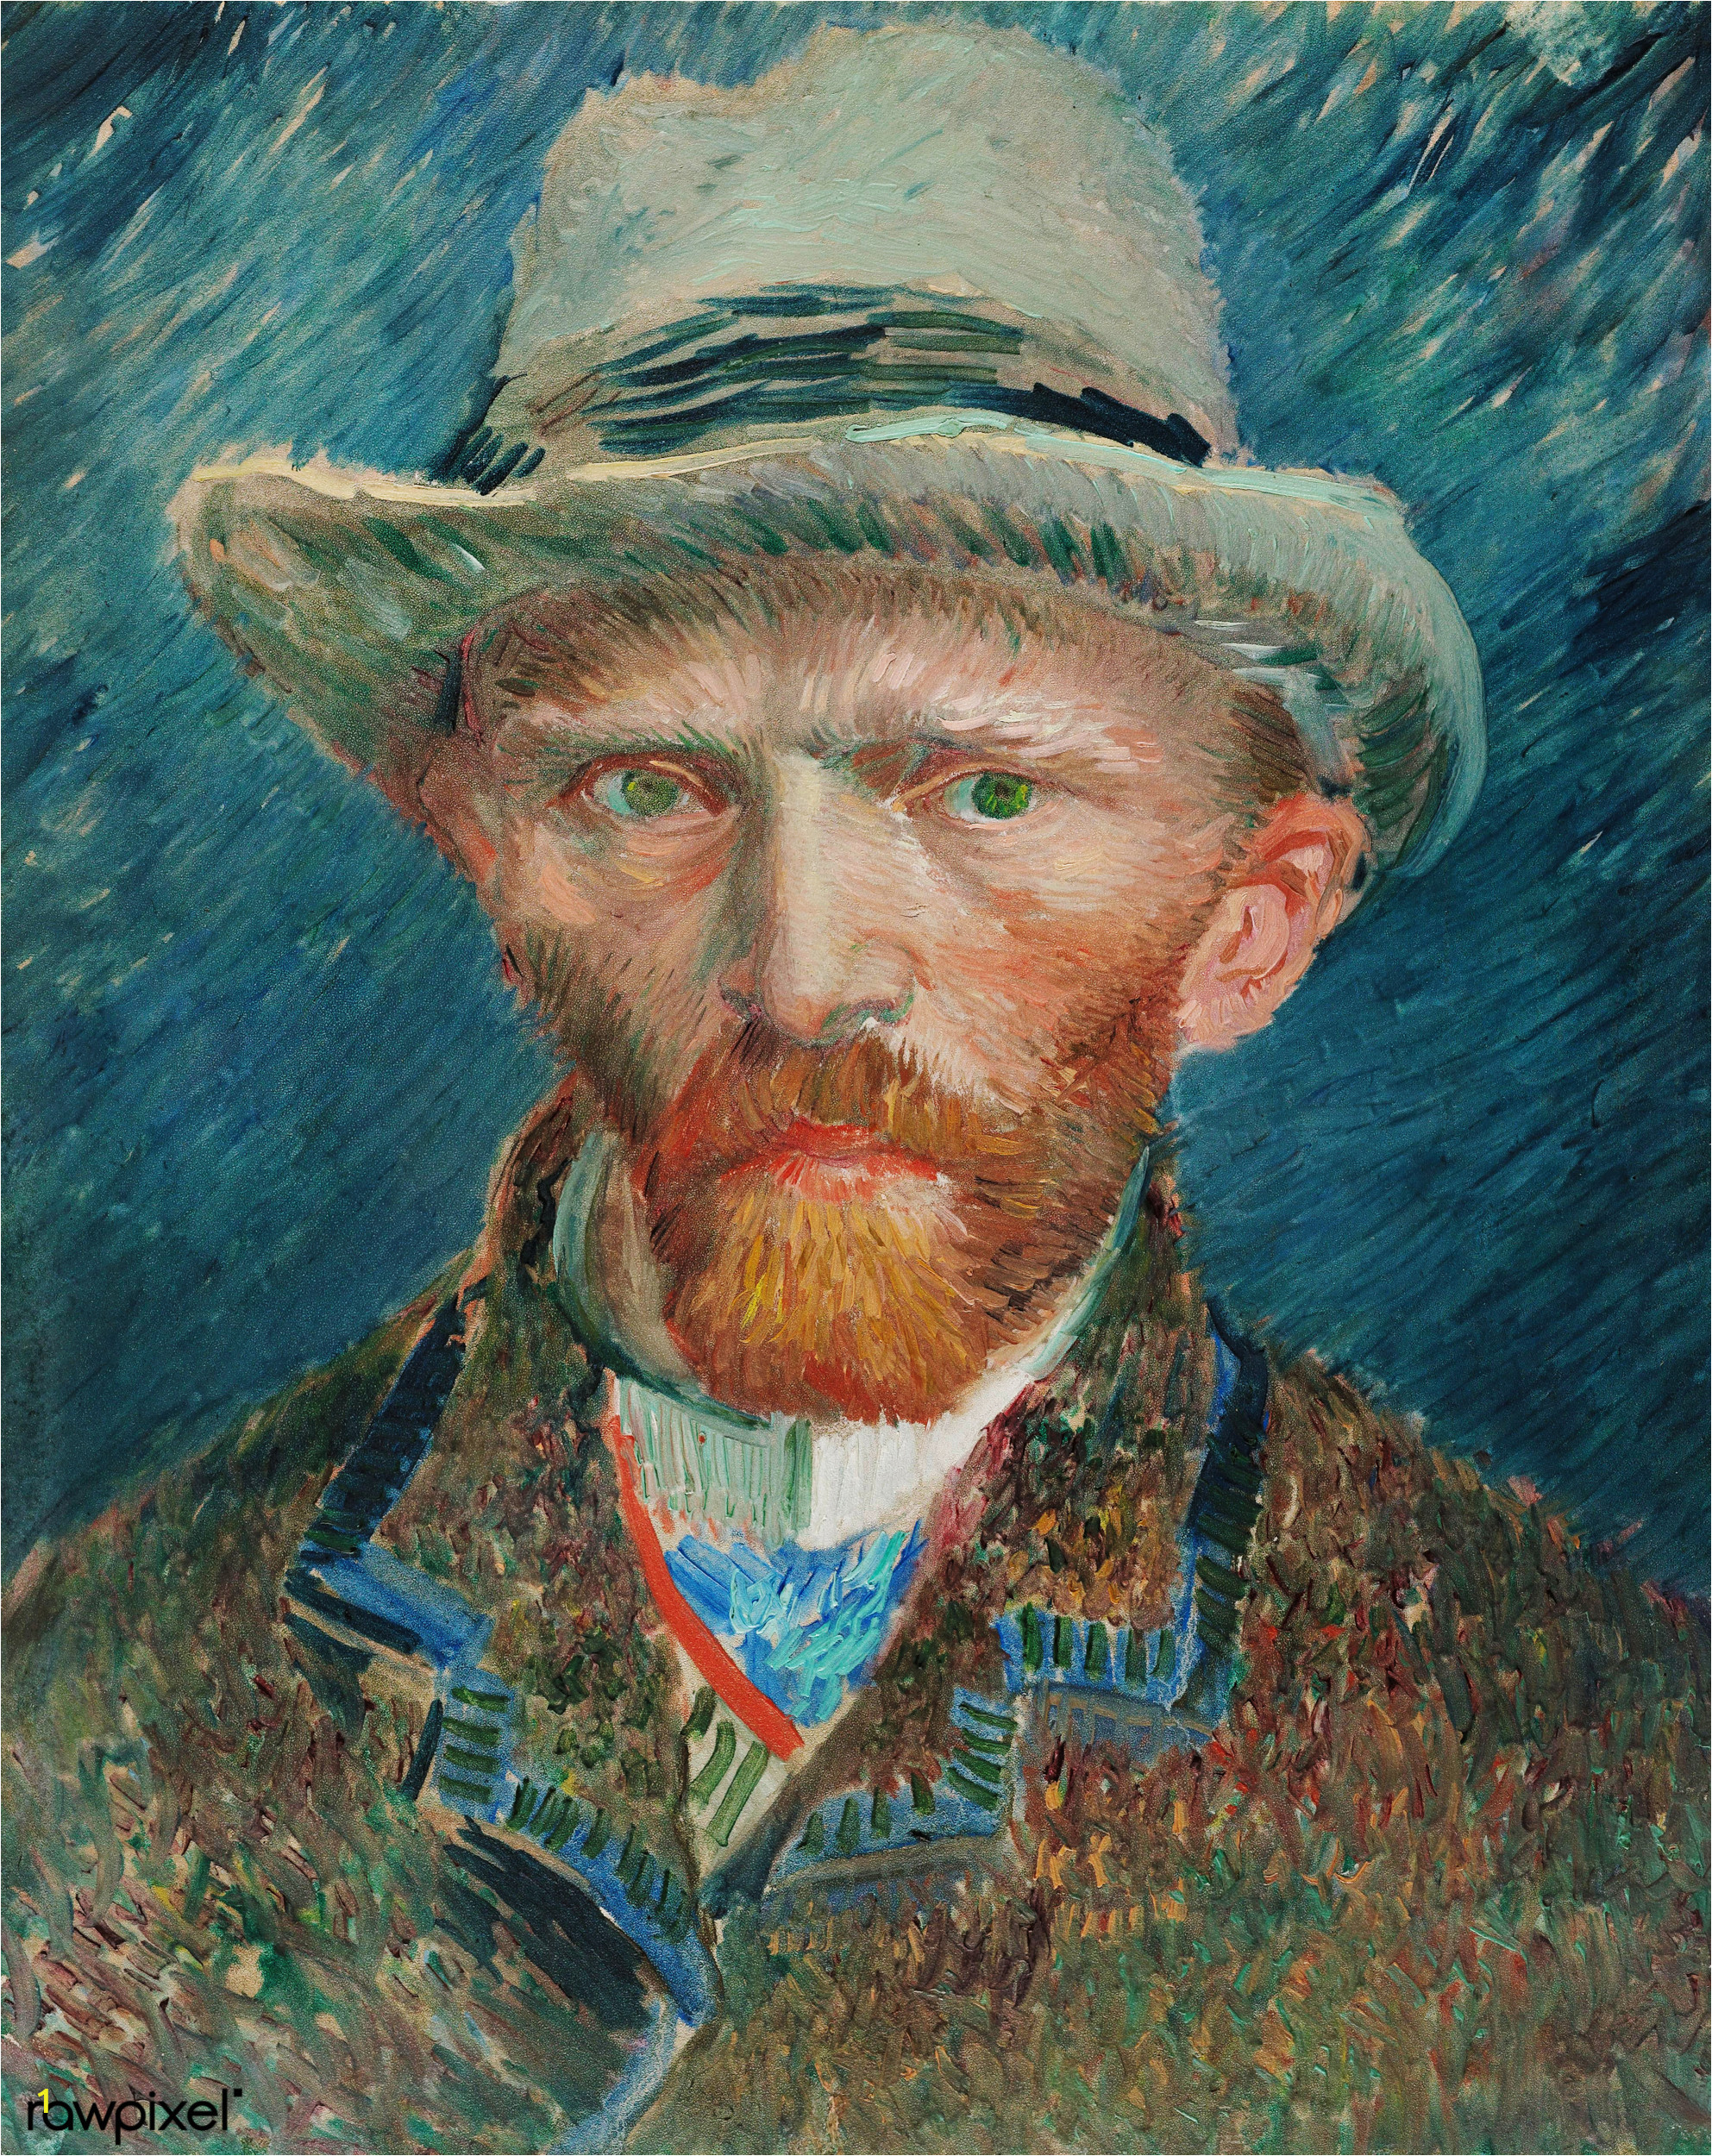 Vincent van Gogh's famous painting digitally enhanced by rawpixel 44